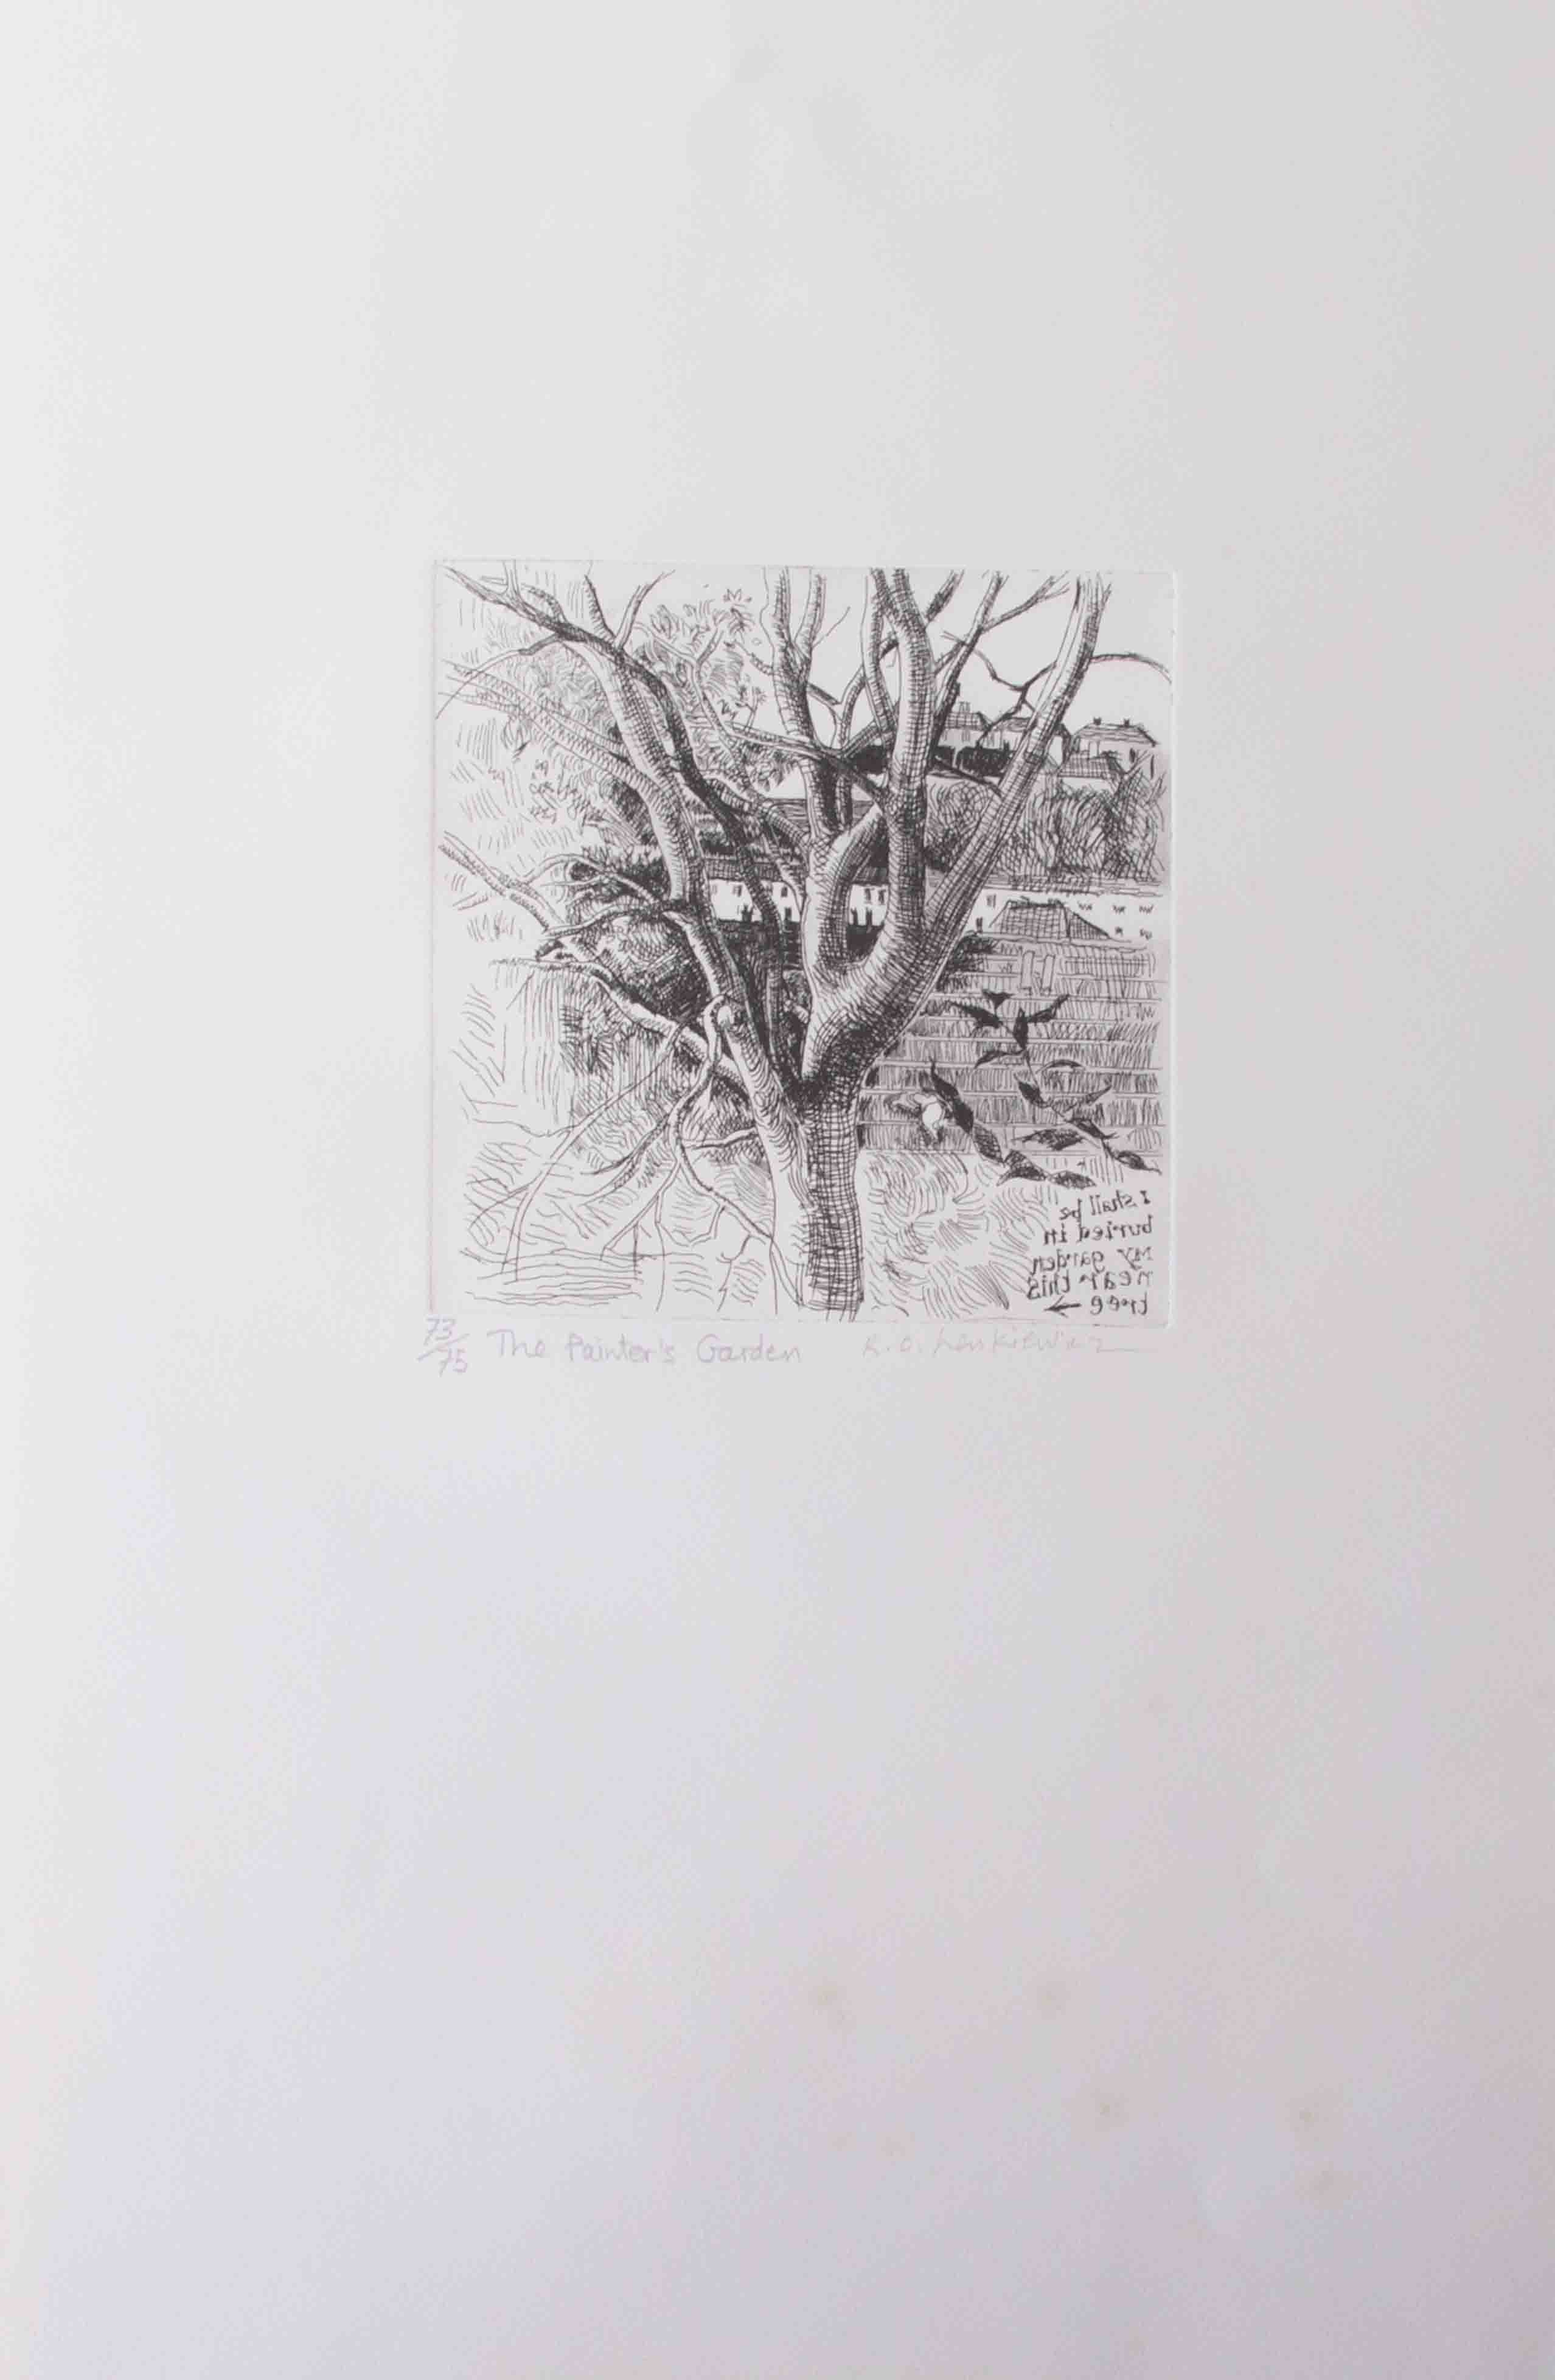 Robert Lenkiewicz (1941-2002) etching 'Painters Garden', signed, limited edition print 73/75,